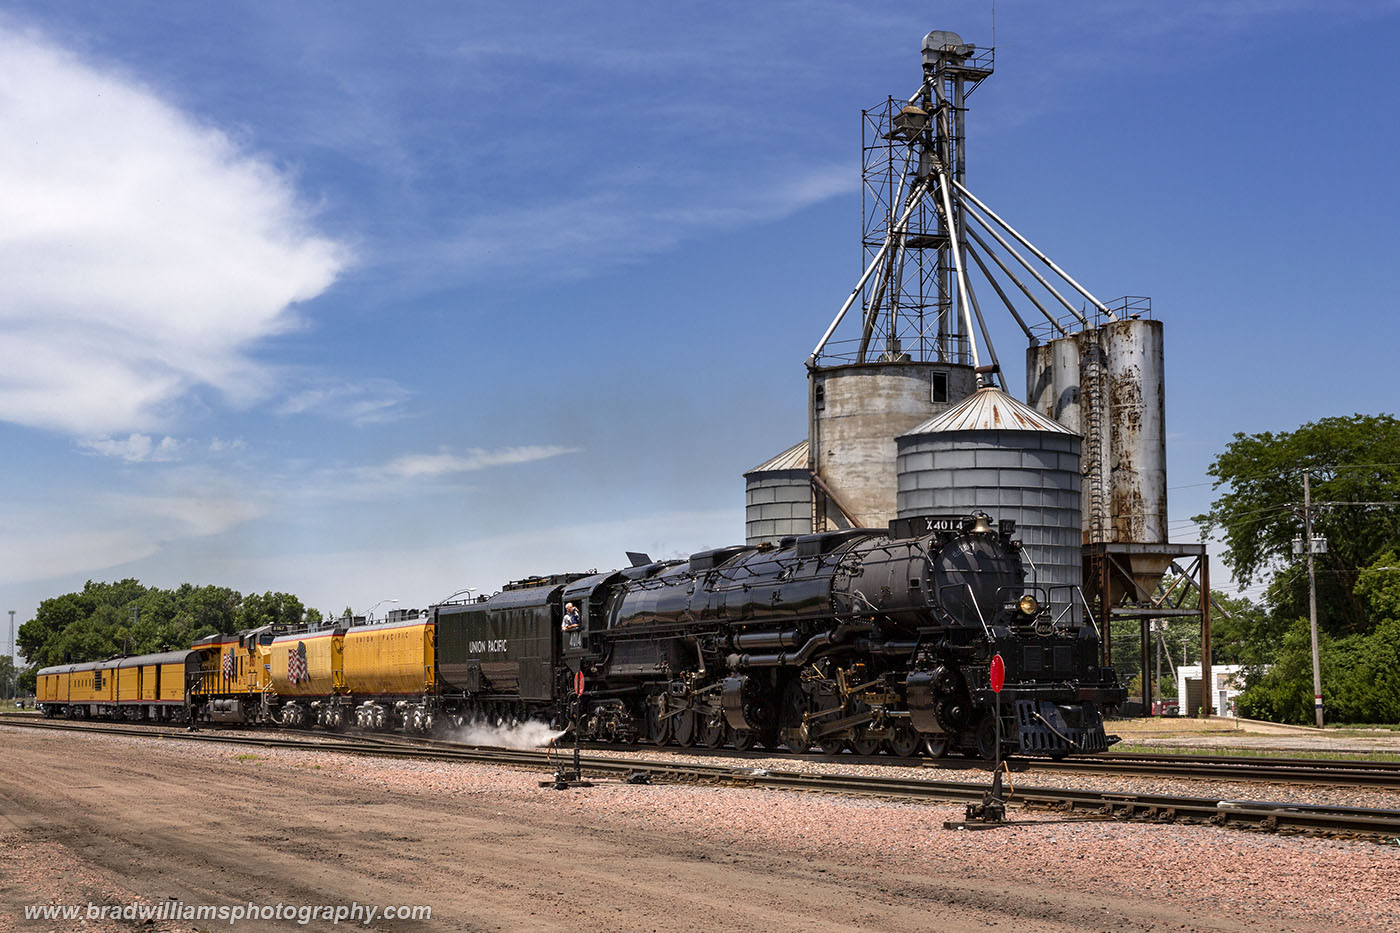 BigBoy, Union Pacific, Steam, Locomotive, Railroad, Train, History, Nebraska, photo